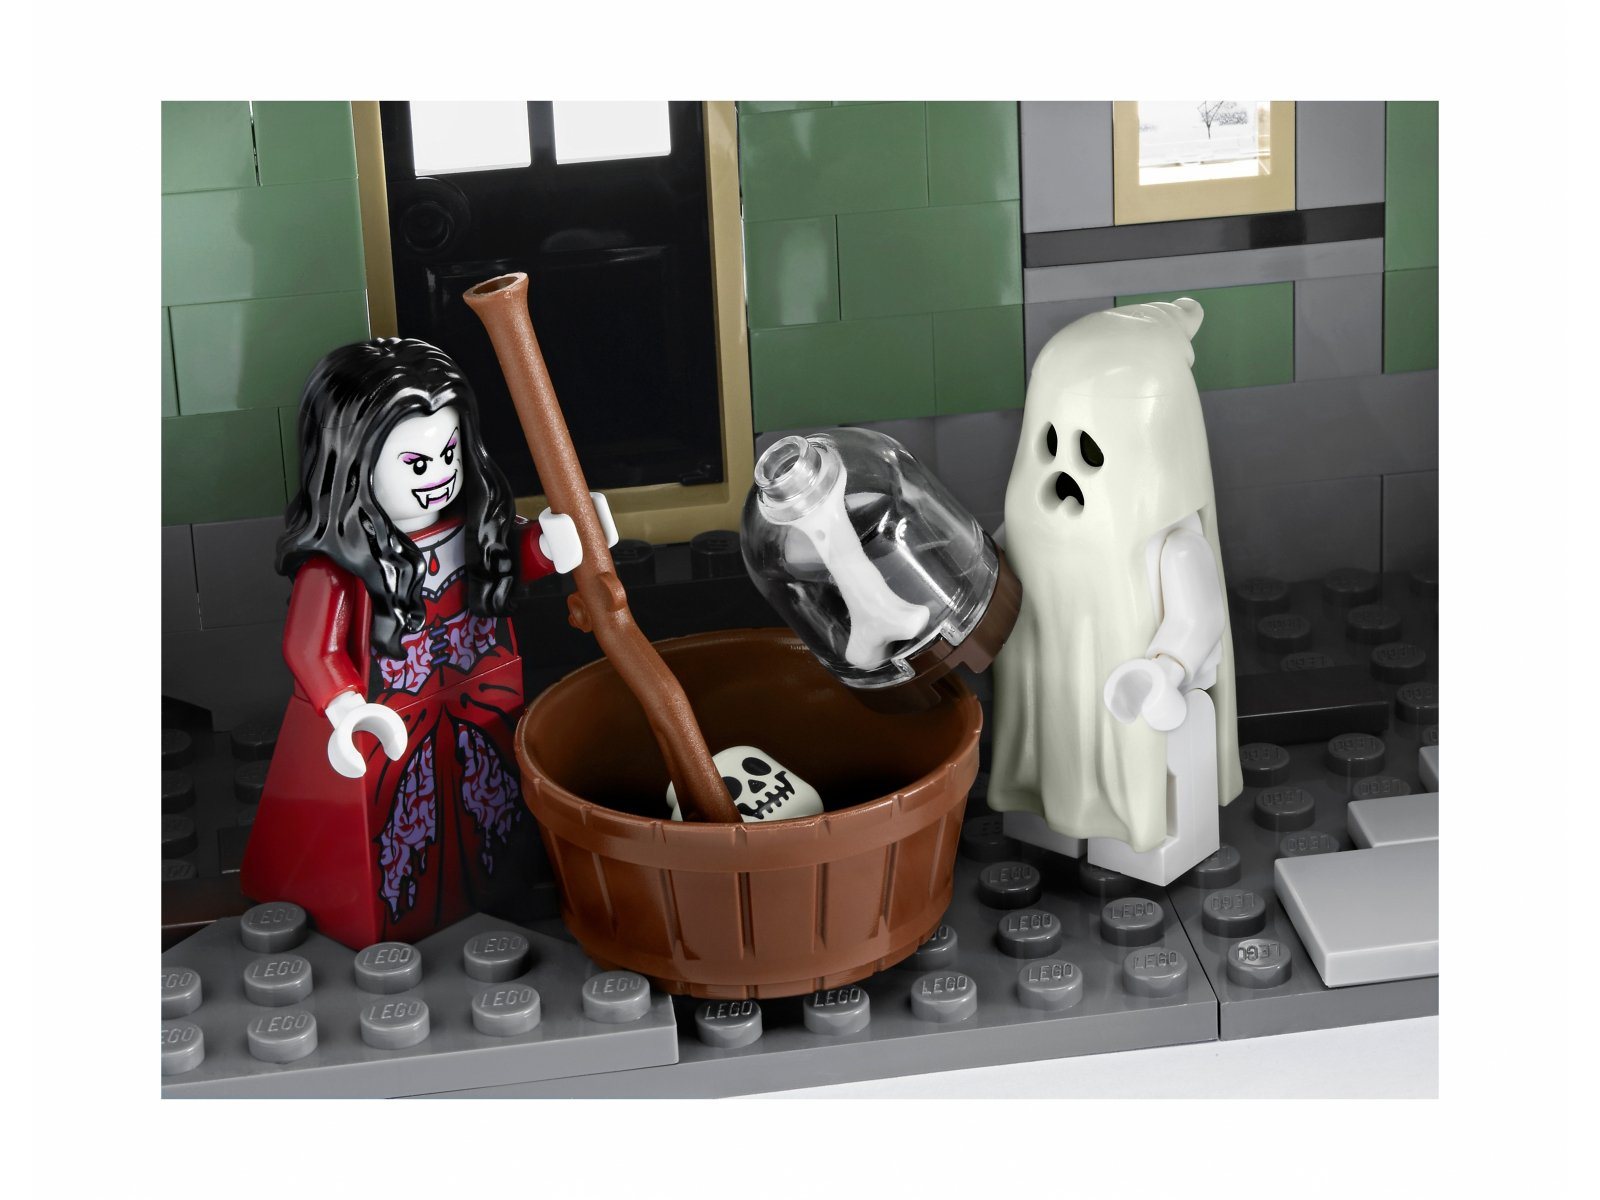 LEGO 10228 Haunted House